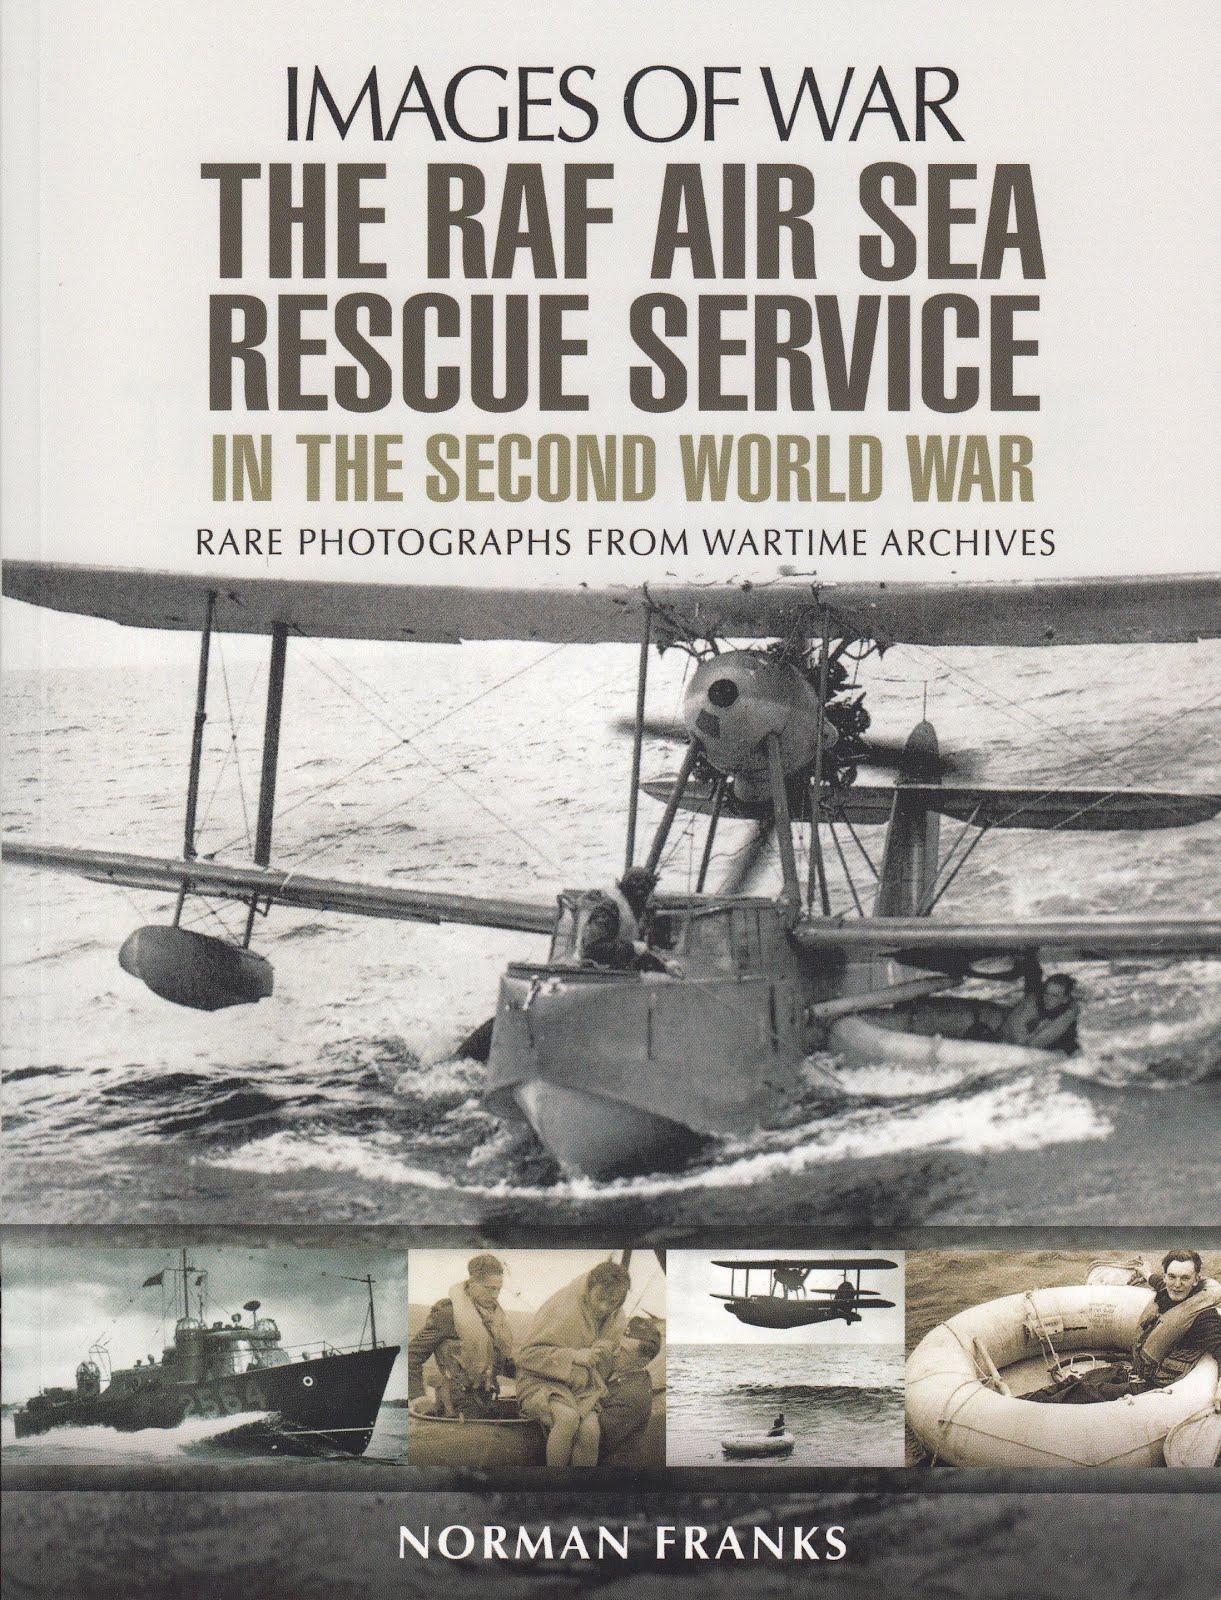 The RAF Air Sea Rescue Service